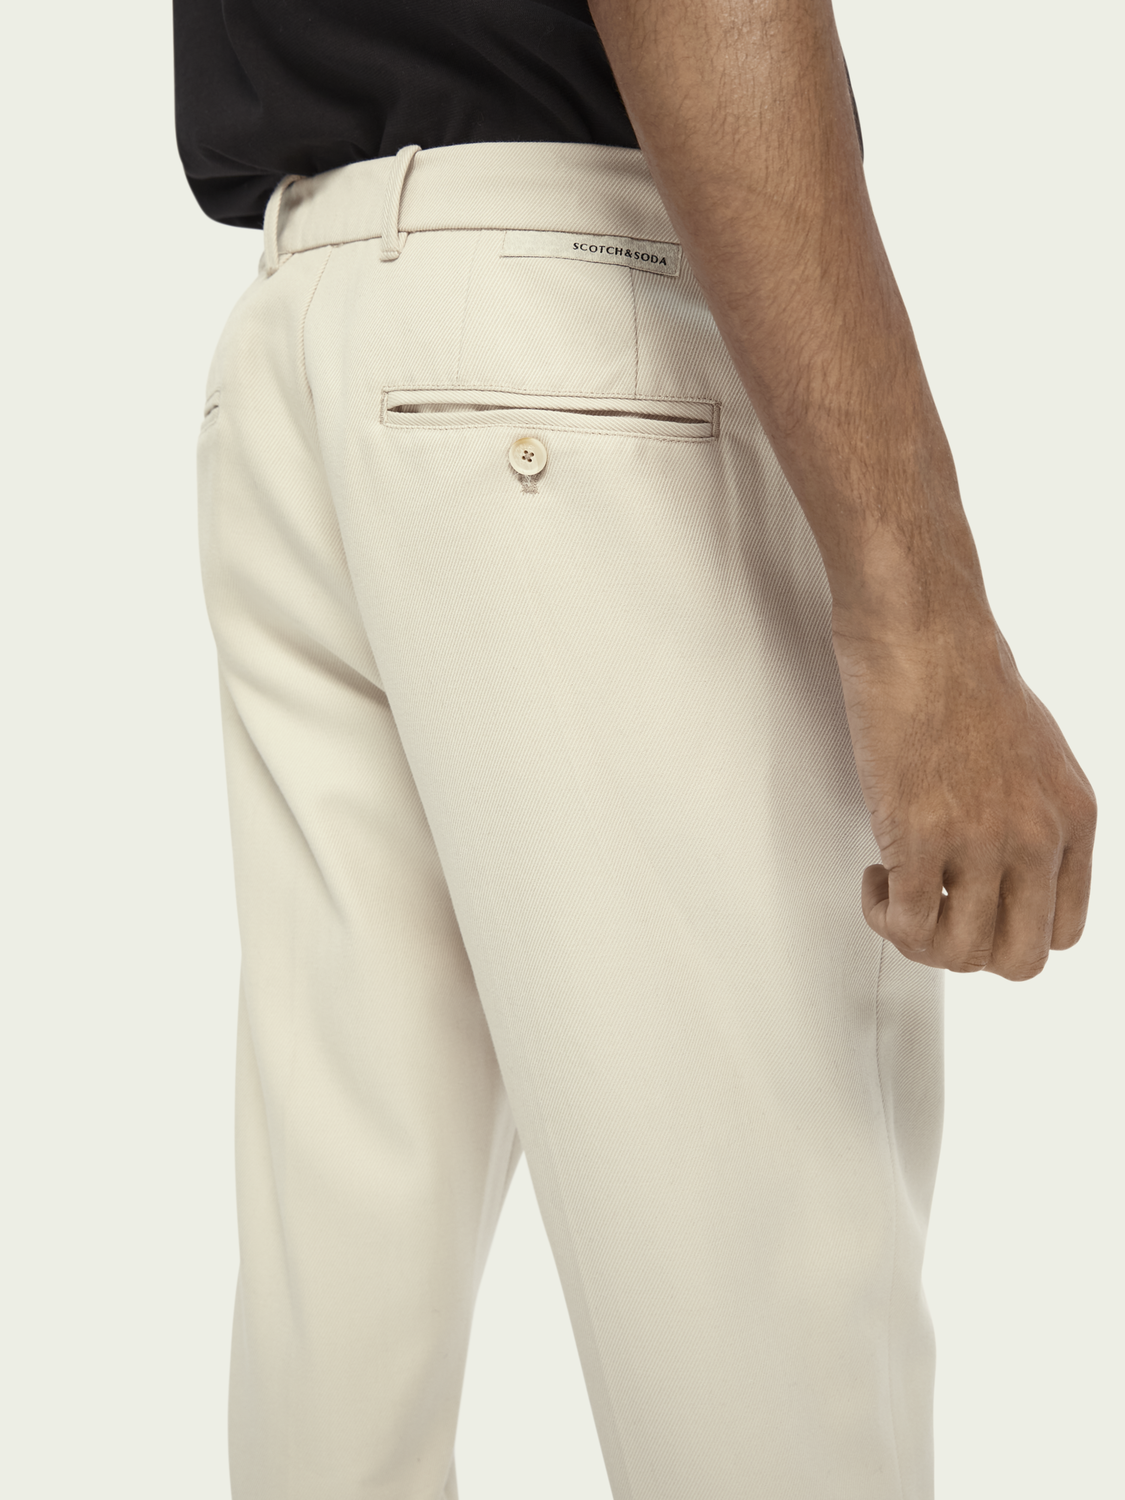 Herrar FAVE - Chinos i ylle/bomull | Tapered fit